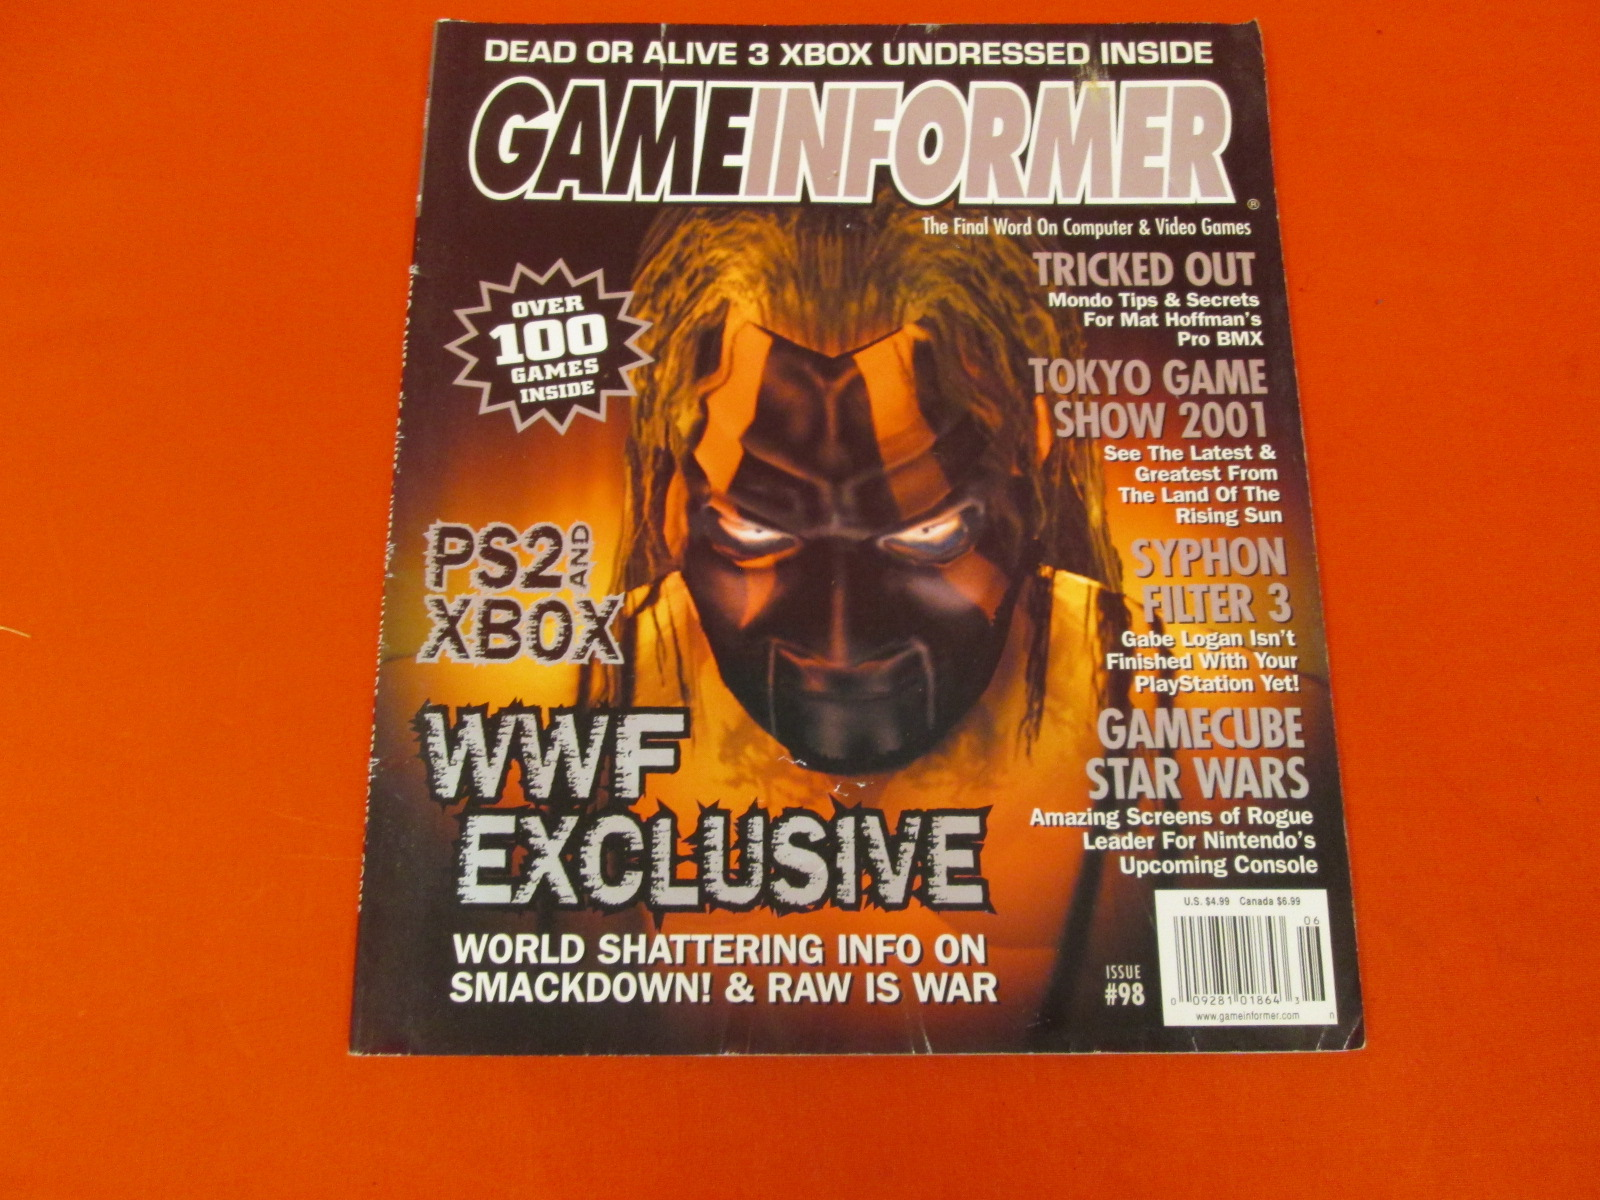 Game Informer Issue 98 Dead Or Alive 3 Xbox Undressed Inside WWF